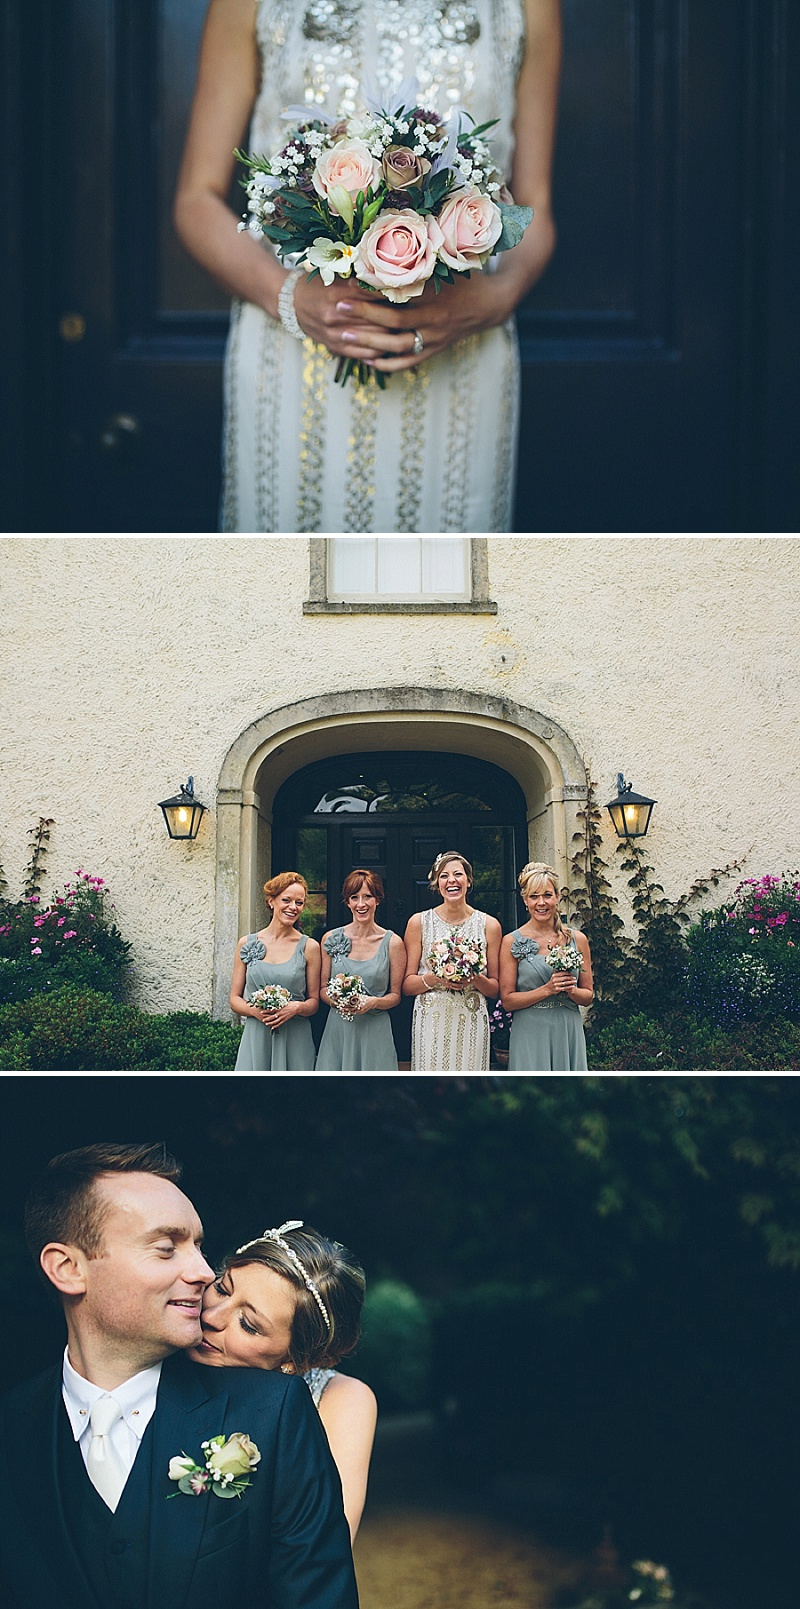 Art Deco and 1920s Inspired Wedding At The Matara Centre Gloucestershire With Bride In Joy By Jenny Packham and Bridesmaids in No 1 by Jenny Packham At Debenhams With Vintage Details and Speakeasy Themed Cocktails 1 Art Deco Elegance.